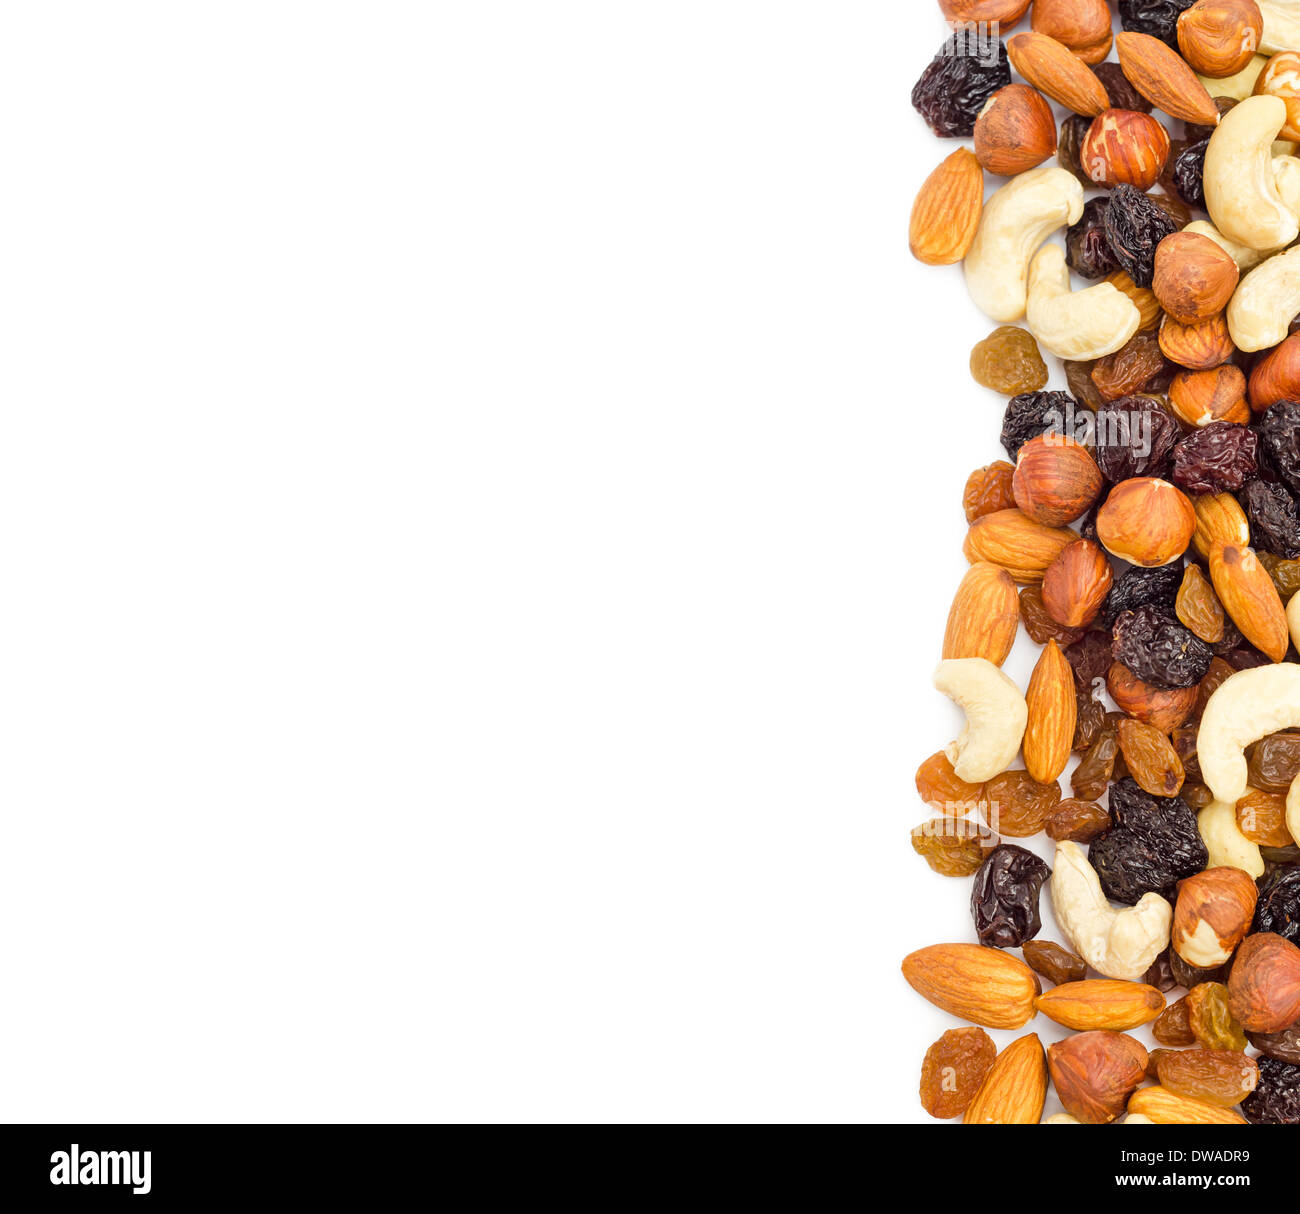 Mixed nuts and dry fruits background. Clipping path. Stock Photo